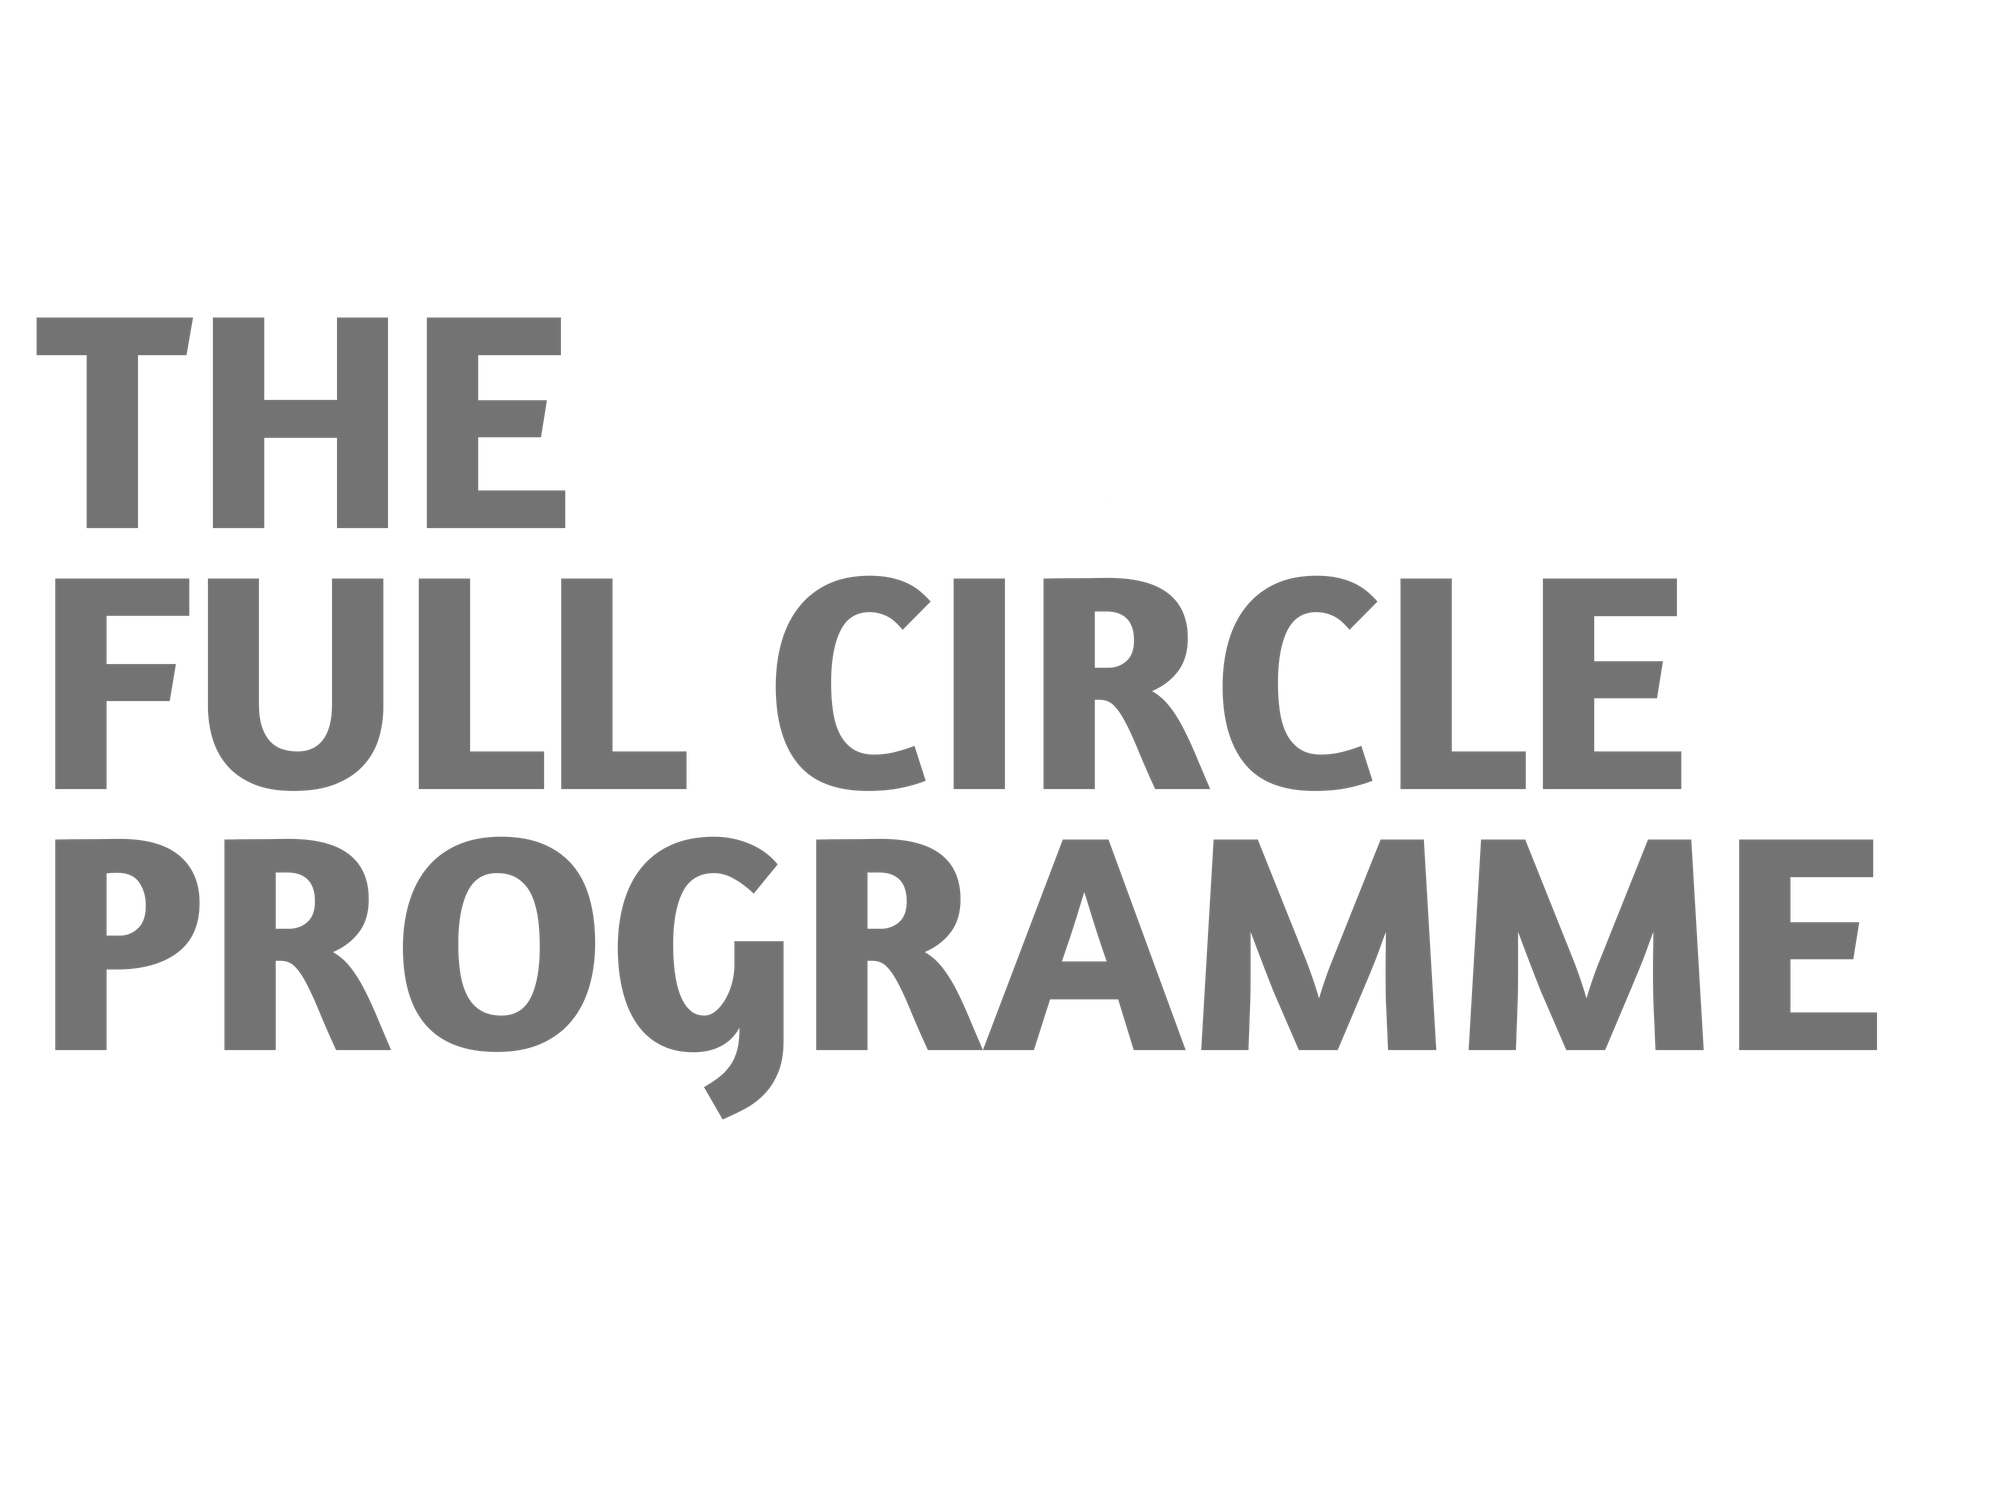 The James Brindley Full Circle Programme Dark logo 2